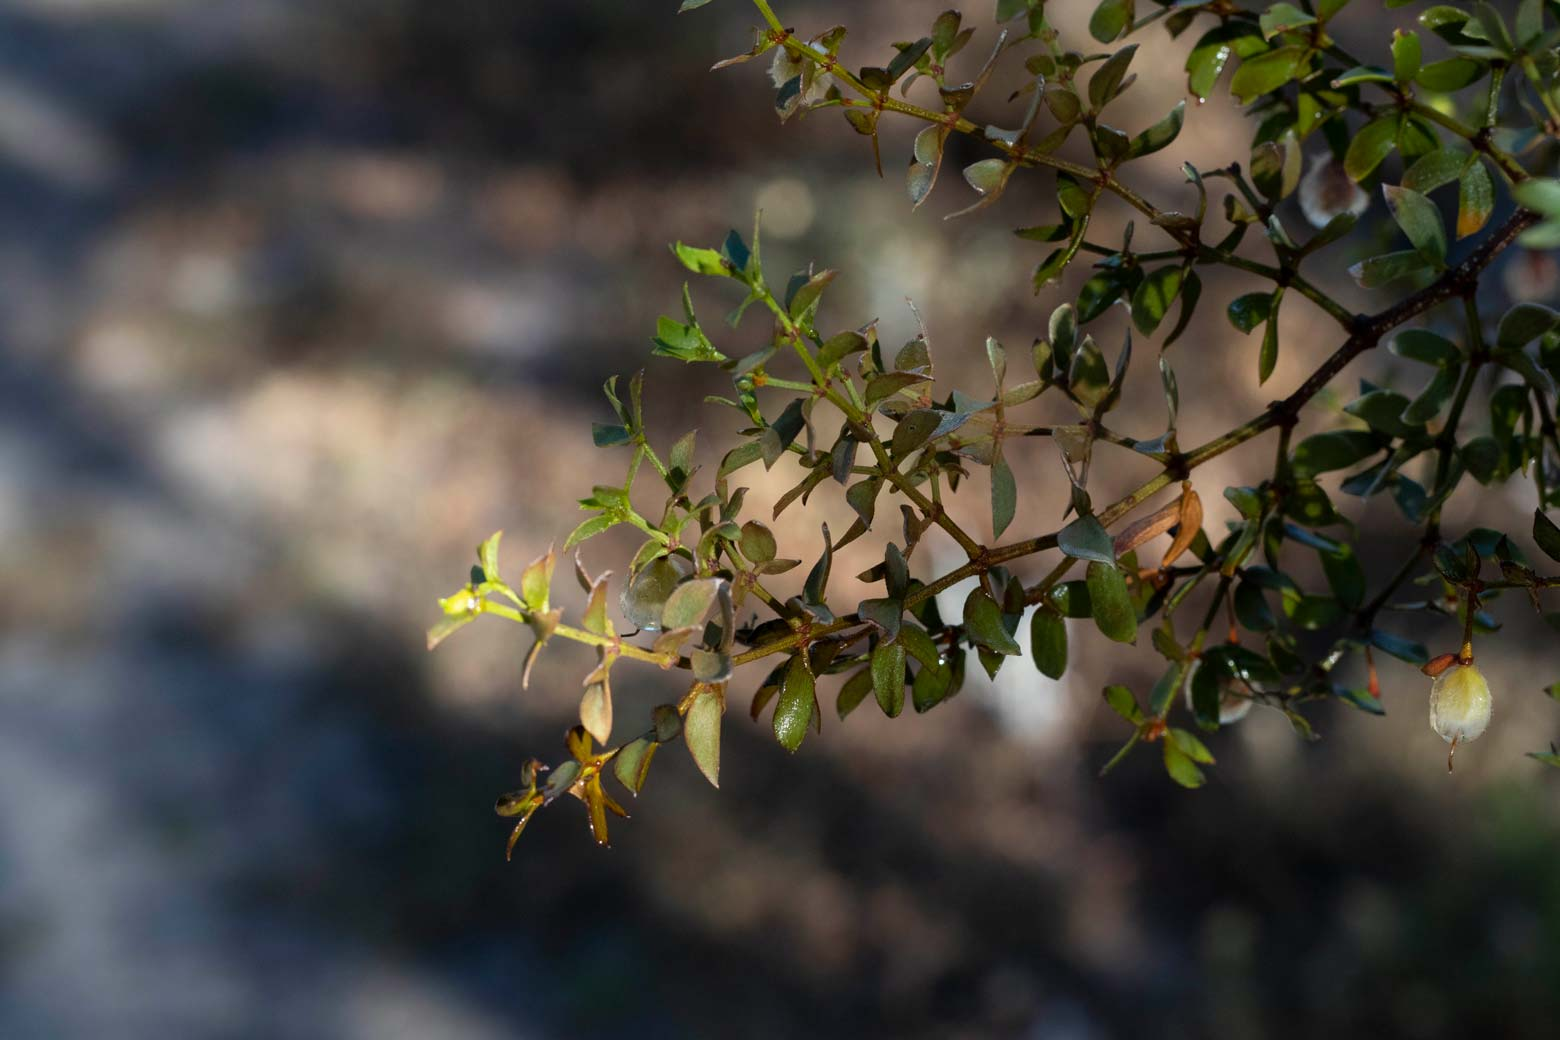 A close-up of the leaves of a Creosote bush.